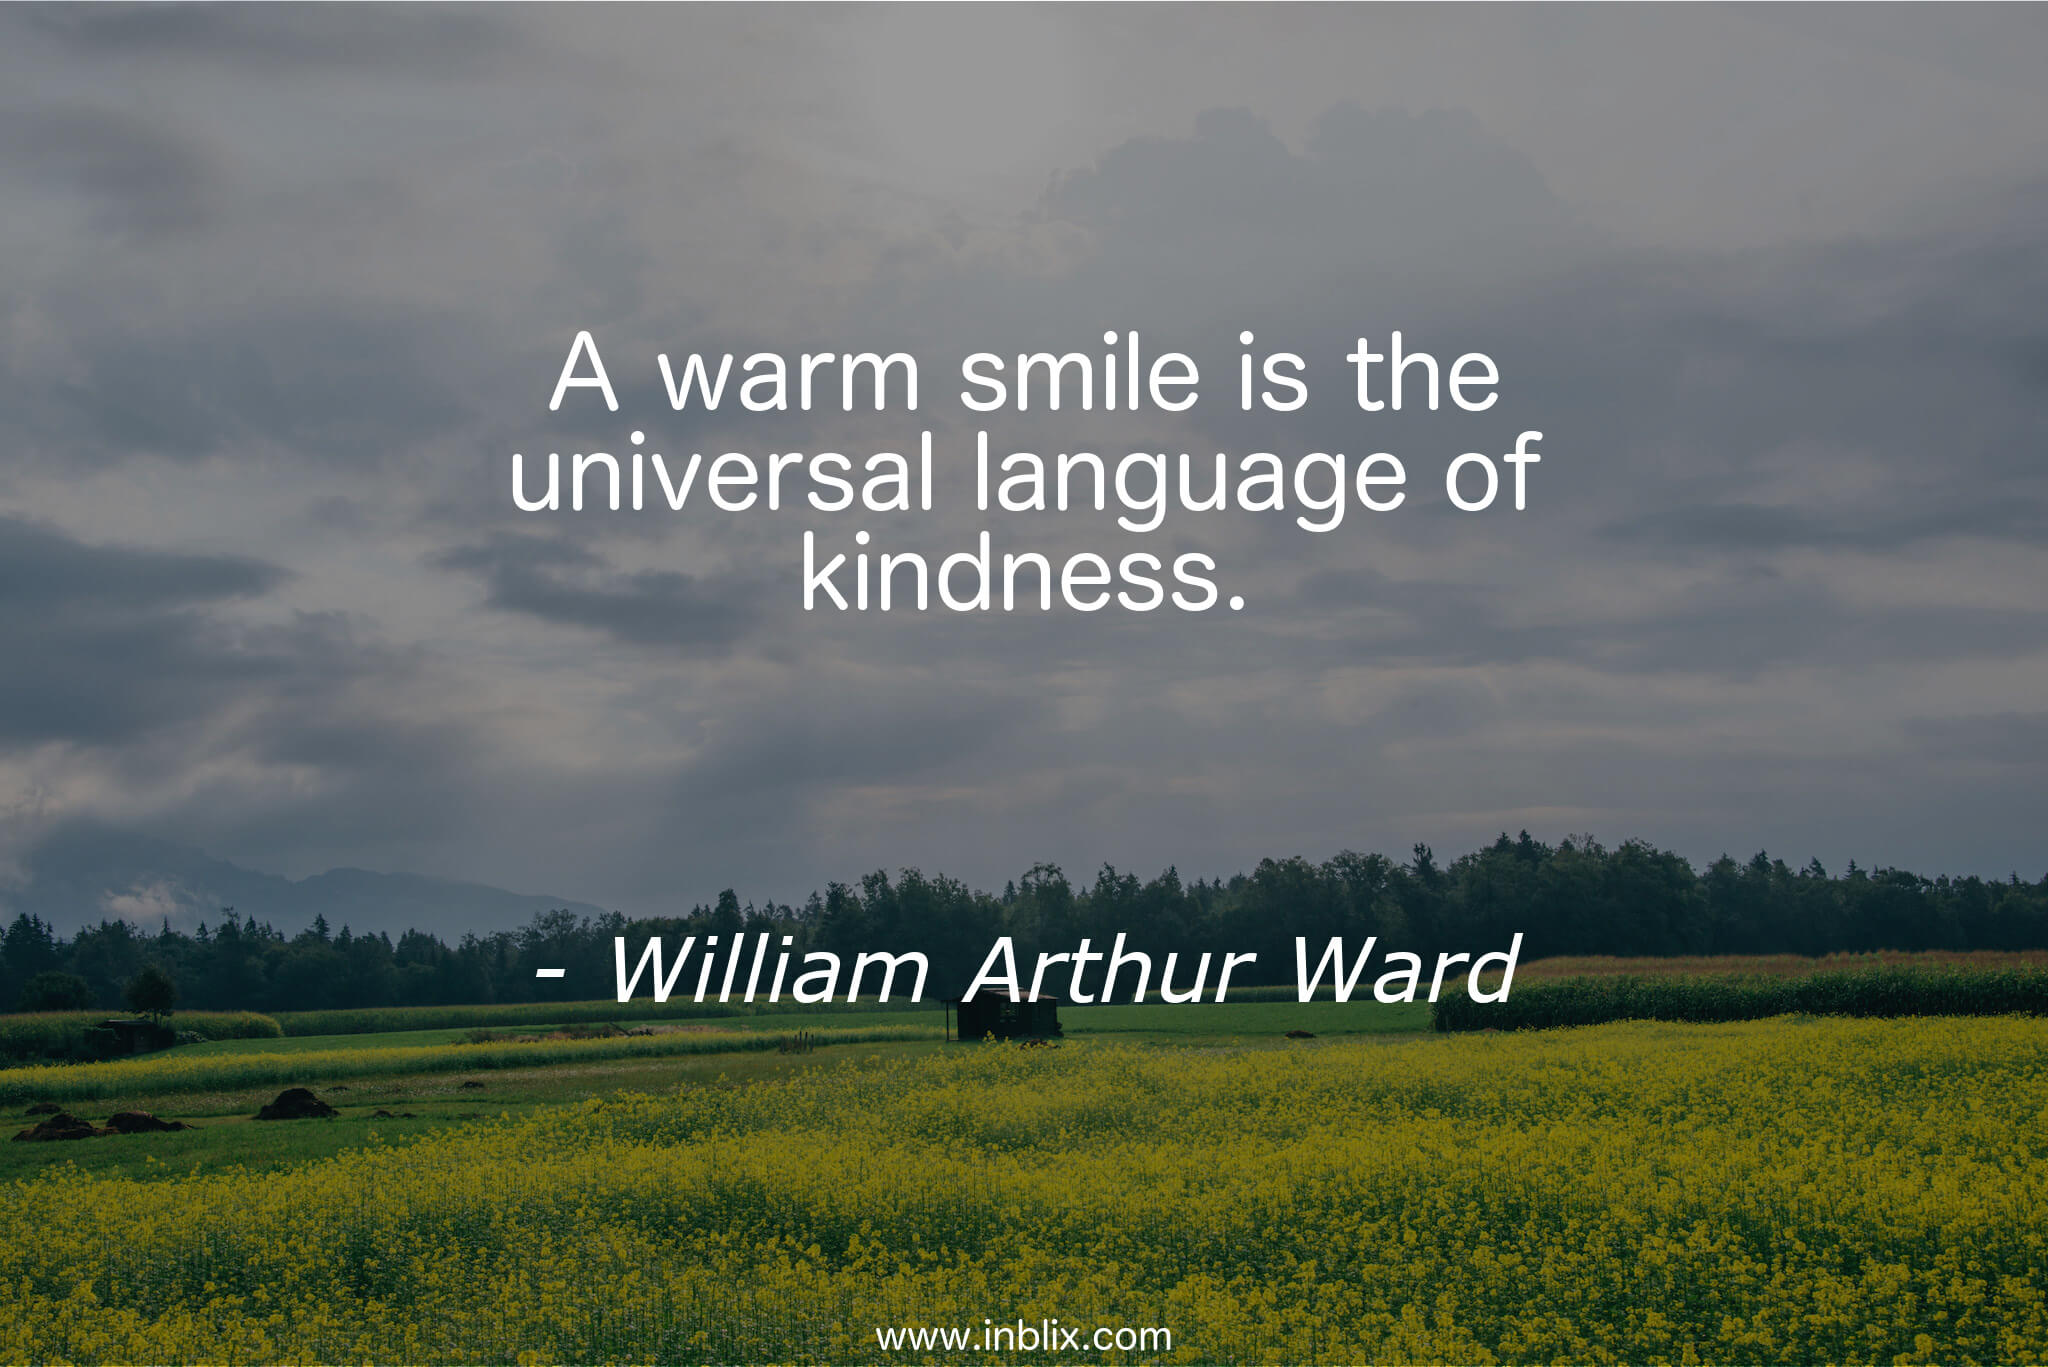 A warm smile is the universal language of kindness.